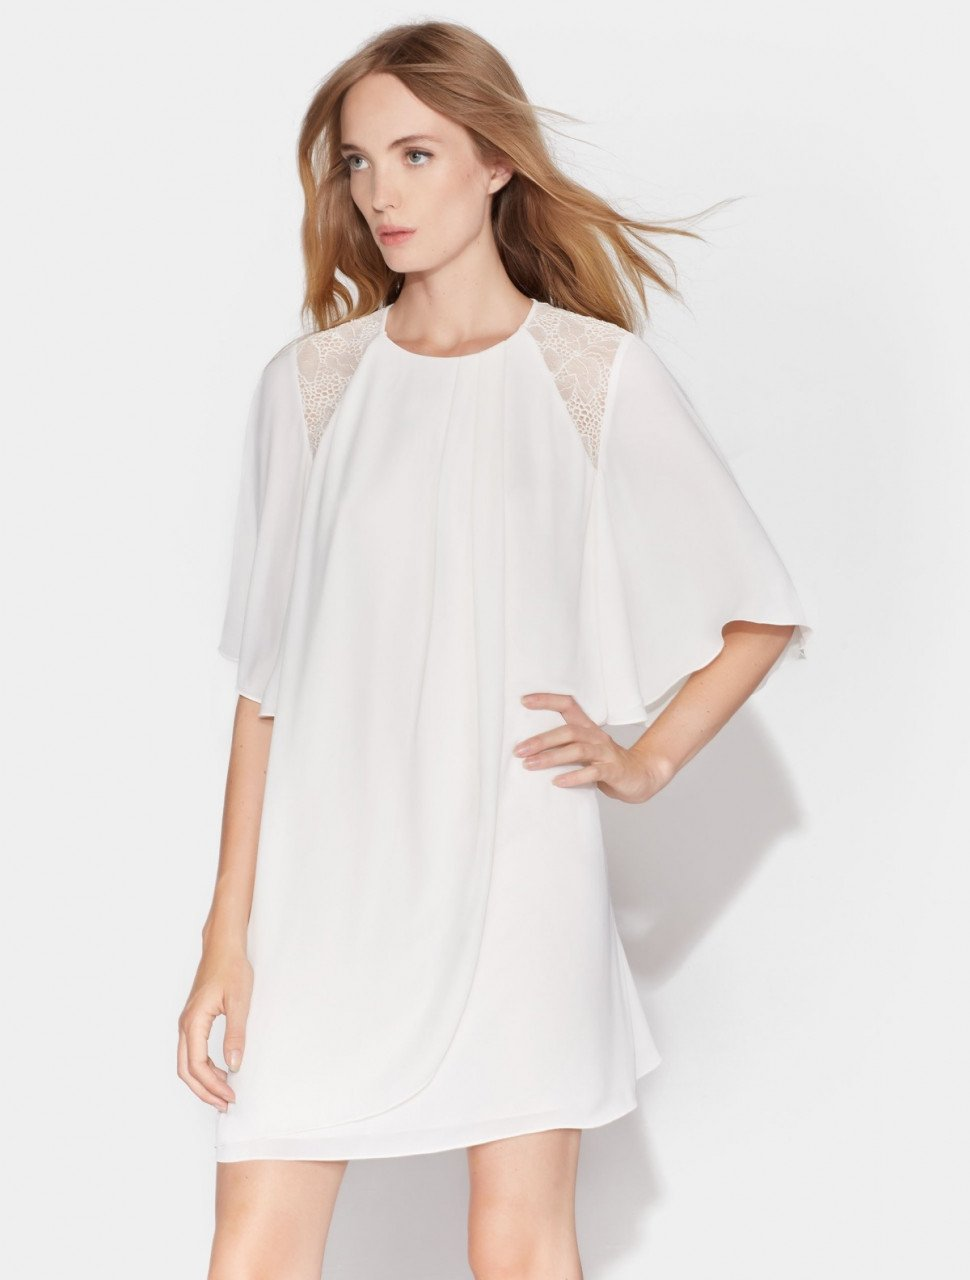 FLOWY SHORT SLEEVE DRESS WITH LACE